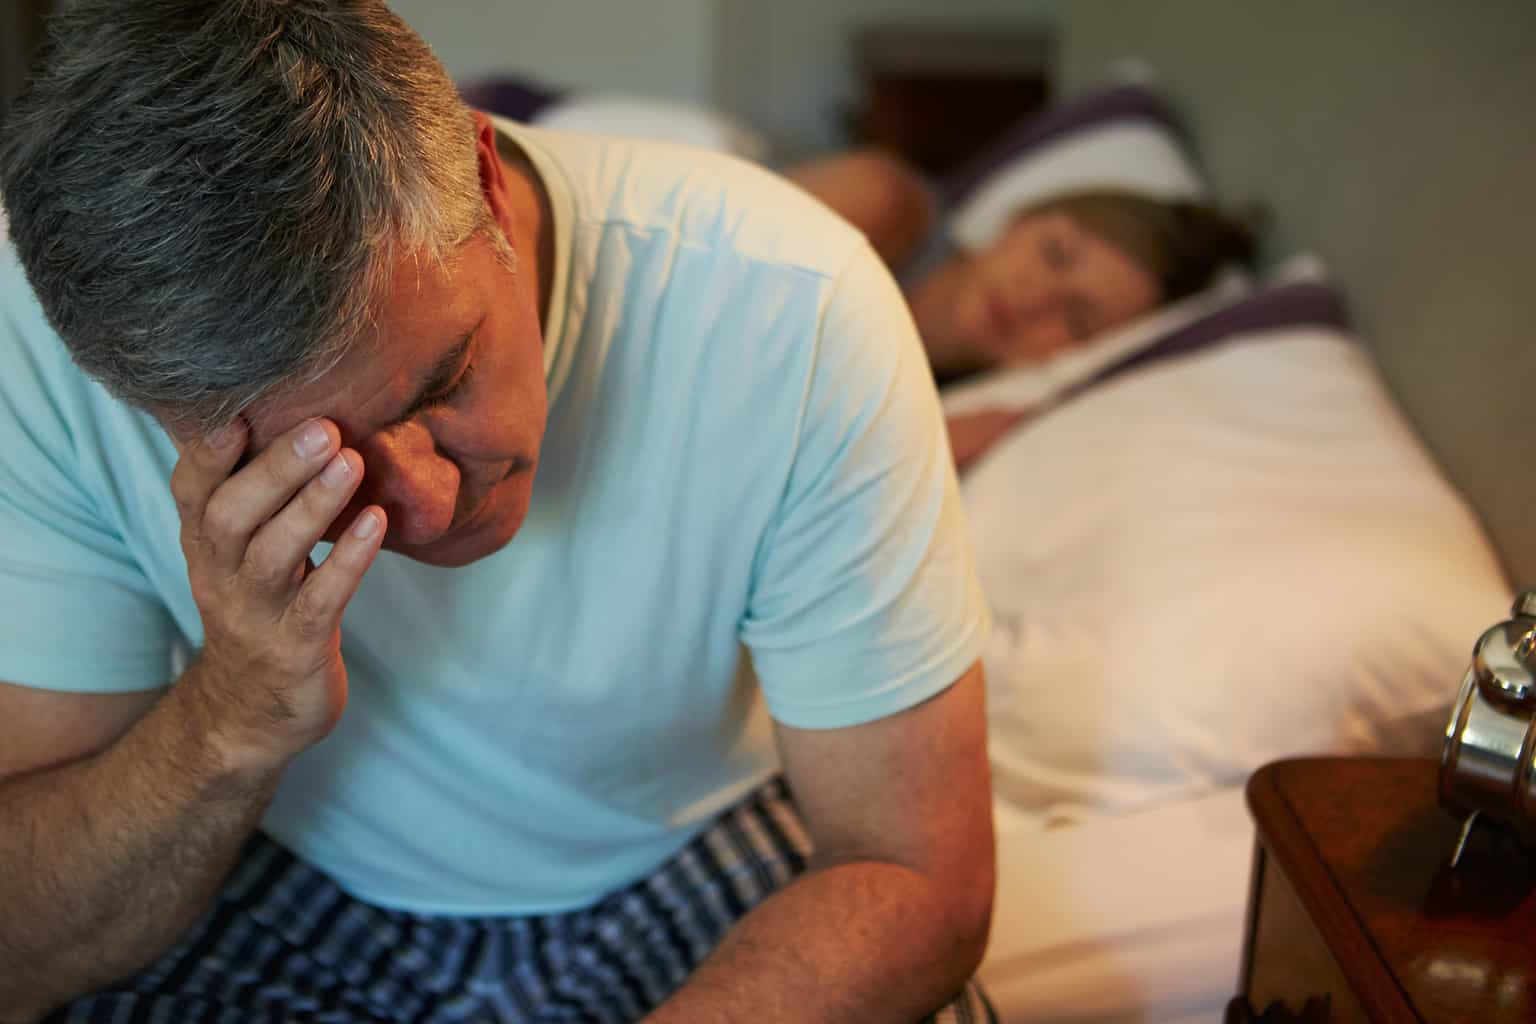 man with insomnia sitting on bed